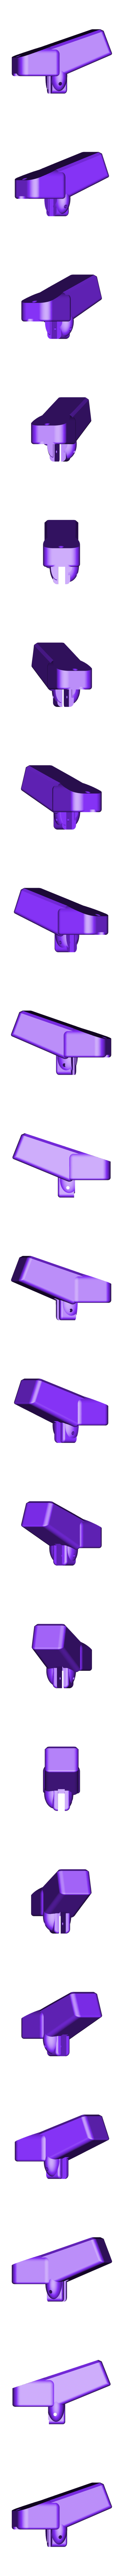 MINI_CROSSBOW_GRIP_FIXED.stl Download free STL file Match Stick SHOOTER • 3D print object, MuSSy